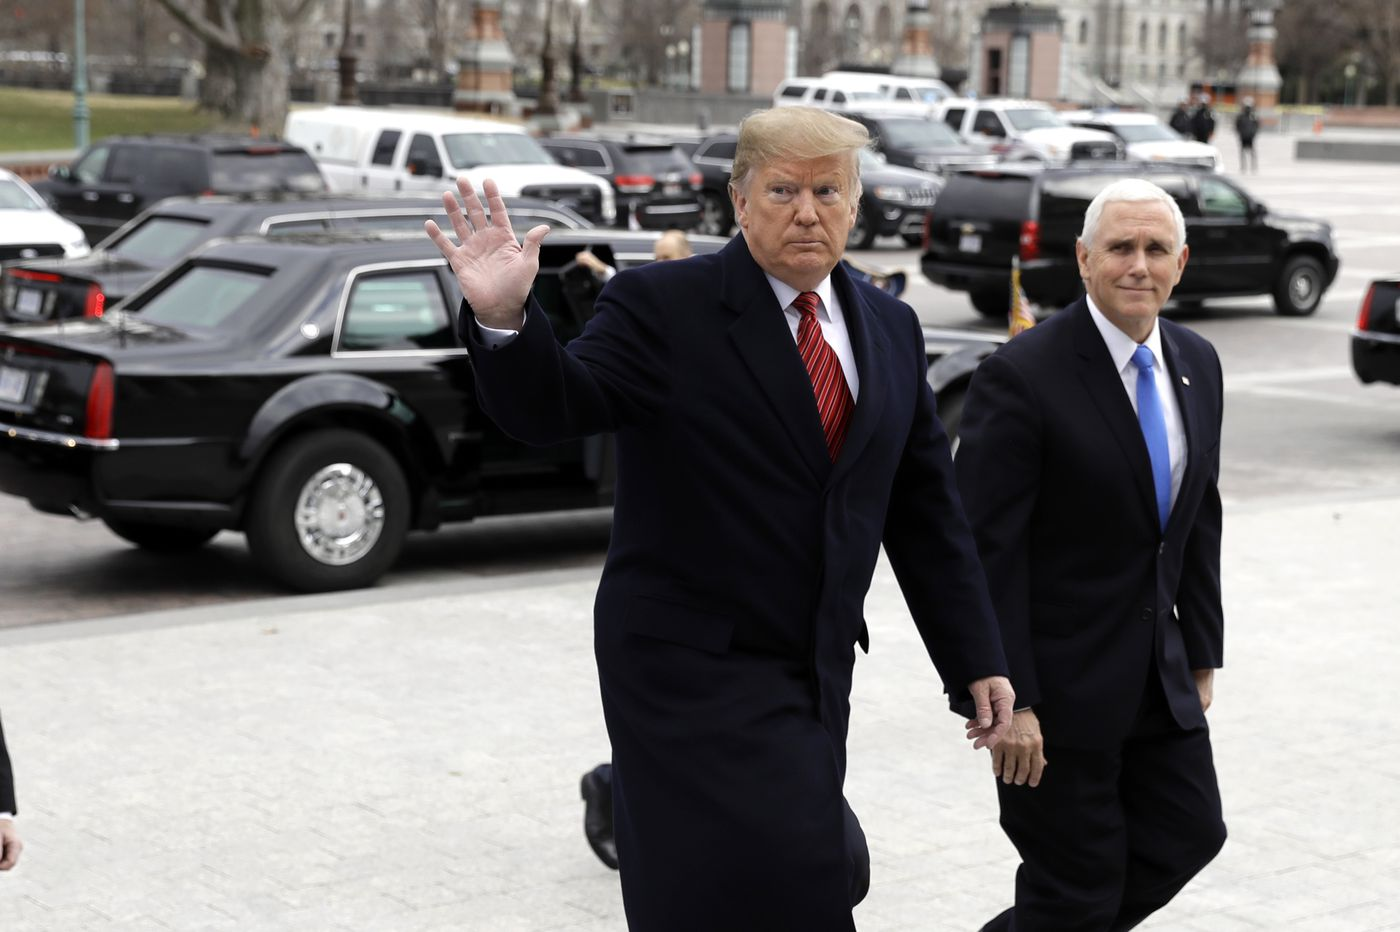 Defeating AIDS in 10 years is possible, just not for the Trump-Pence administration | Opinion